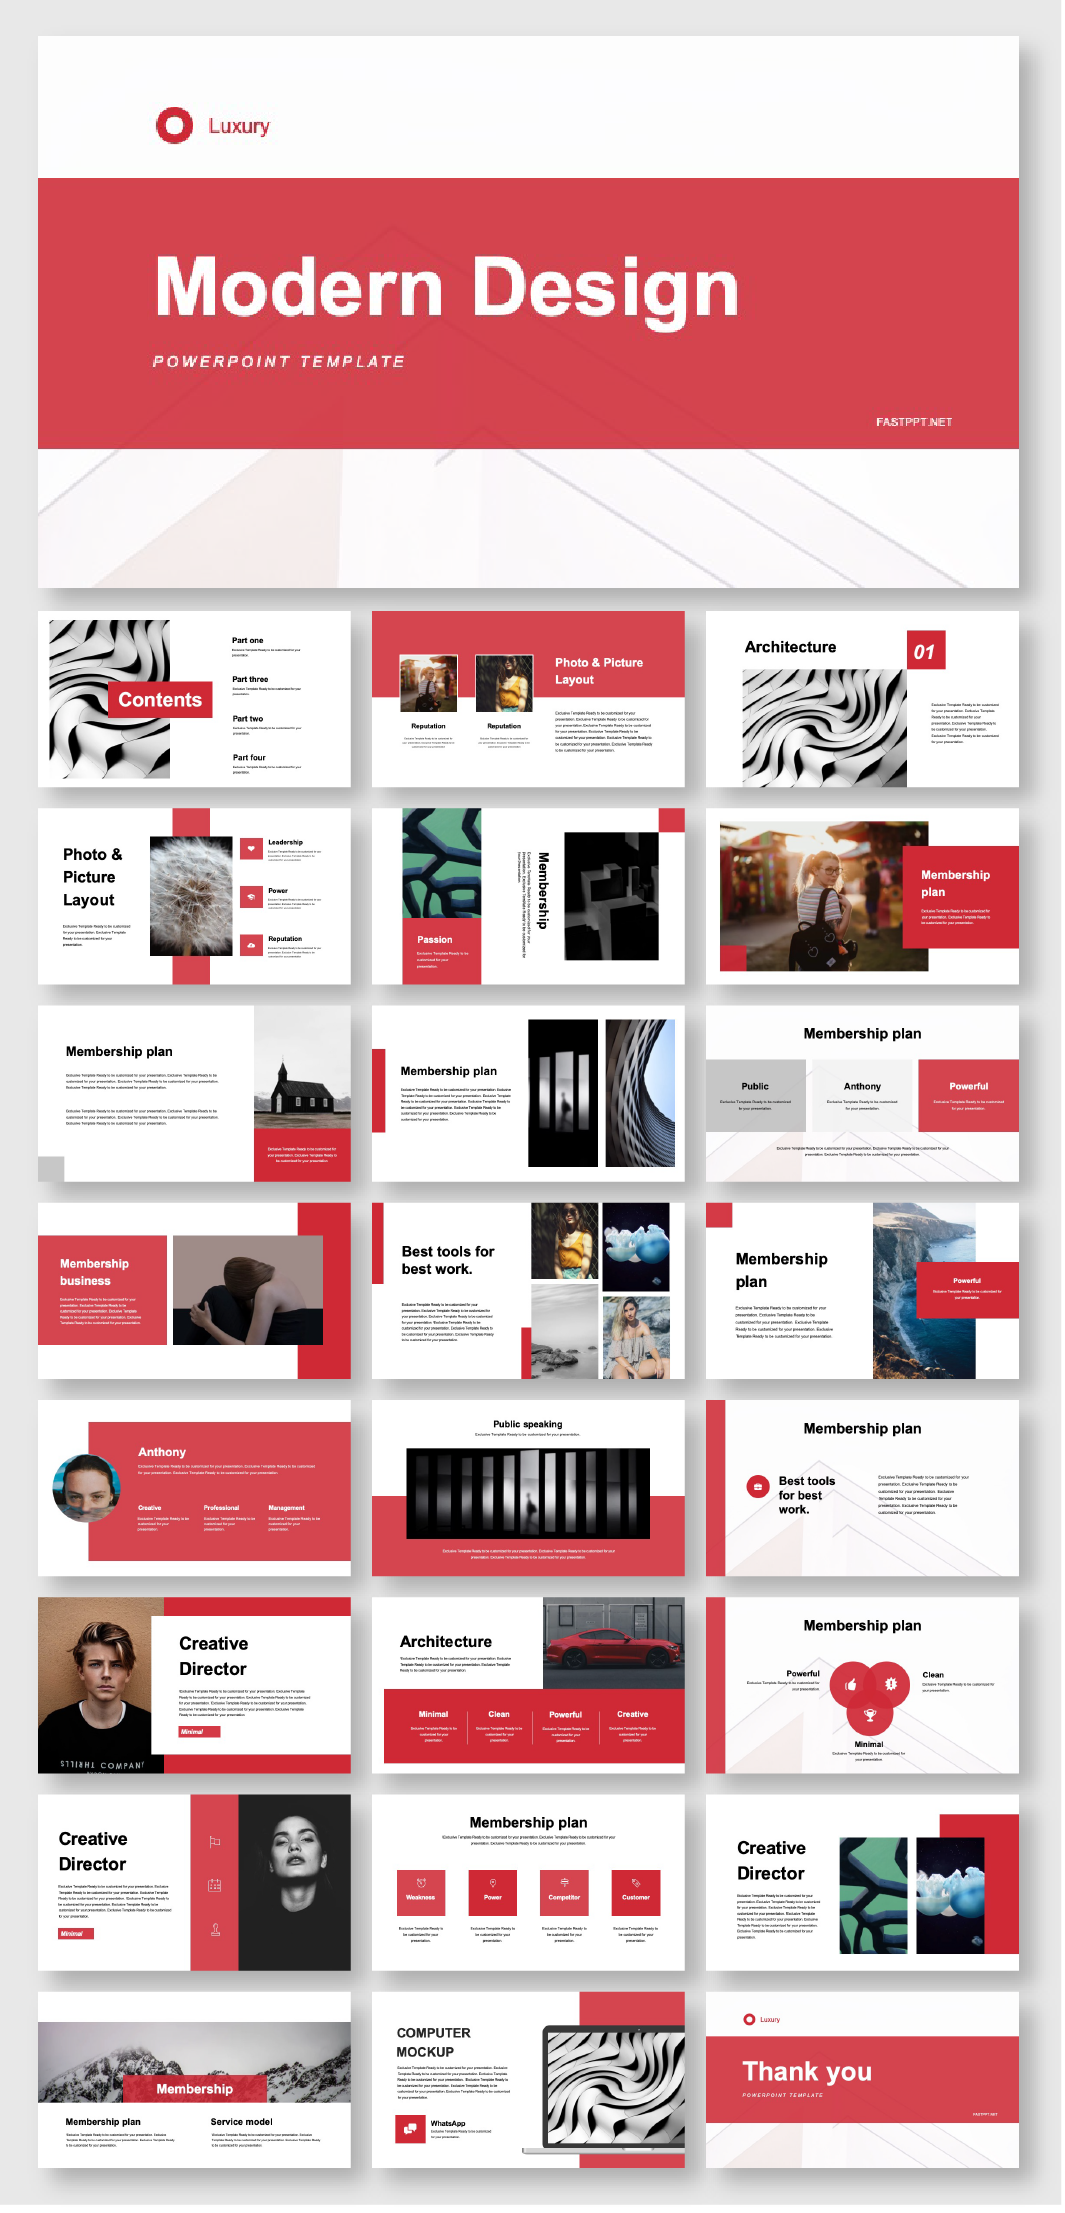 Annual Report Business Plan Powerpoint Template Powerpoint Annual Repo Powerpoint Design Templates Presentation Design Layout Powerpoint Presentation Design